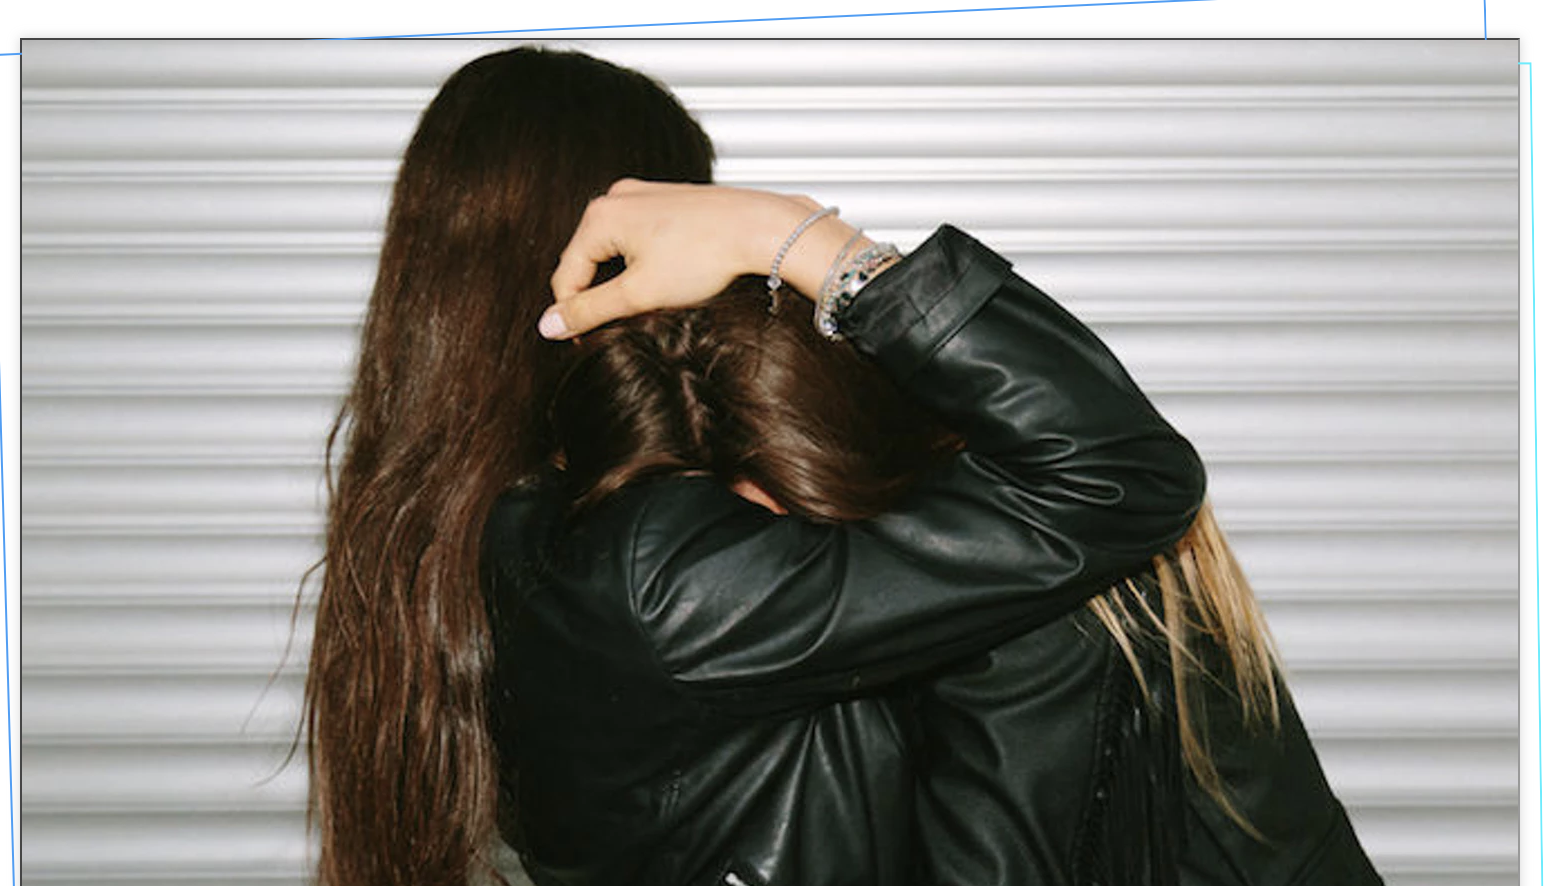 - 3 Ways You Can Be An Ally To Women Who Have Experienced Sexual Trauma